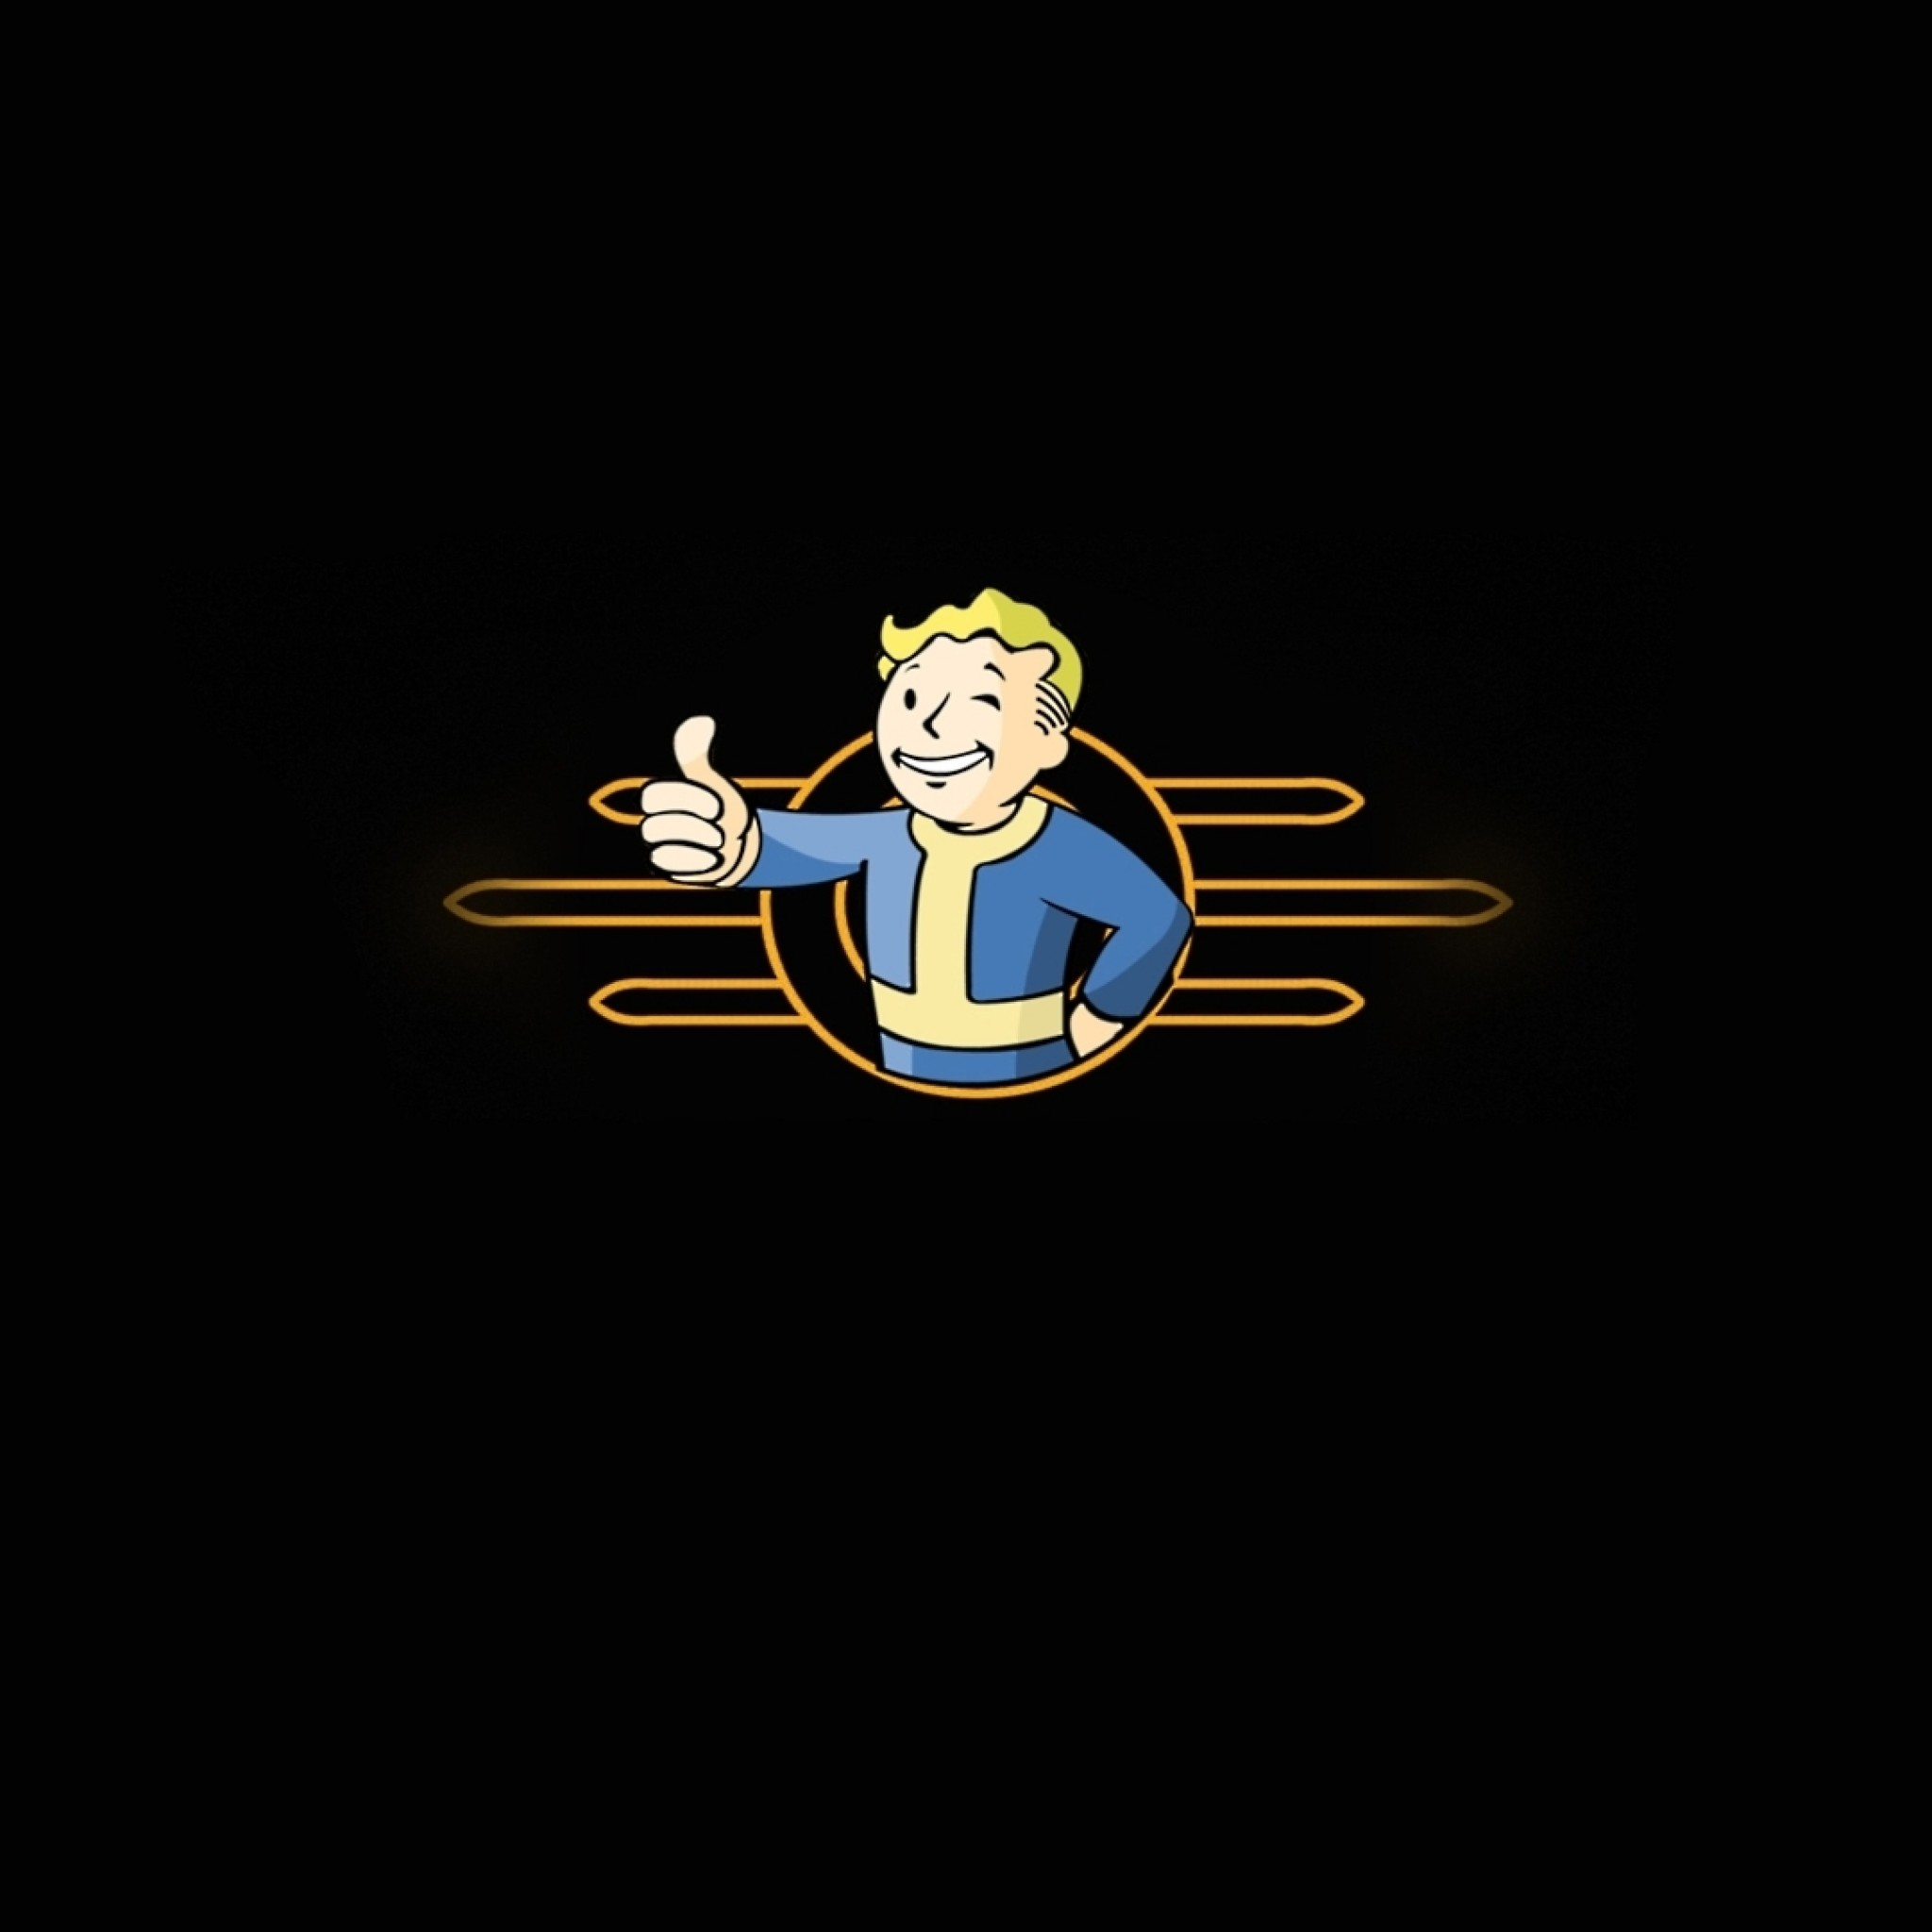 Boy Wallpapers And Backgrounds 2048x2048Px Vault Boy Wallpaper 2048x2048